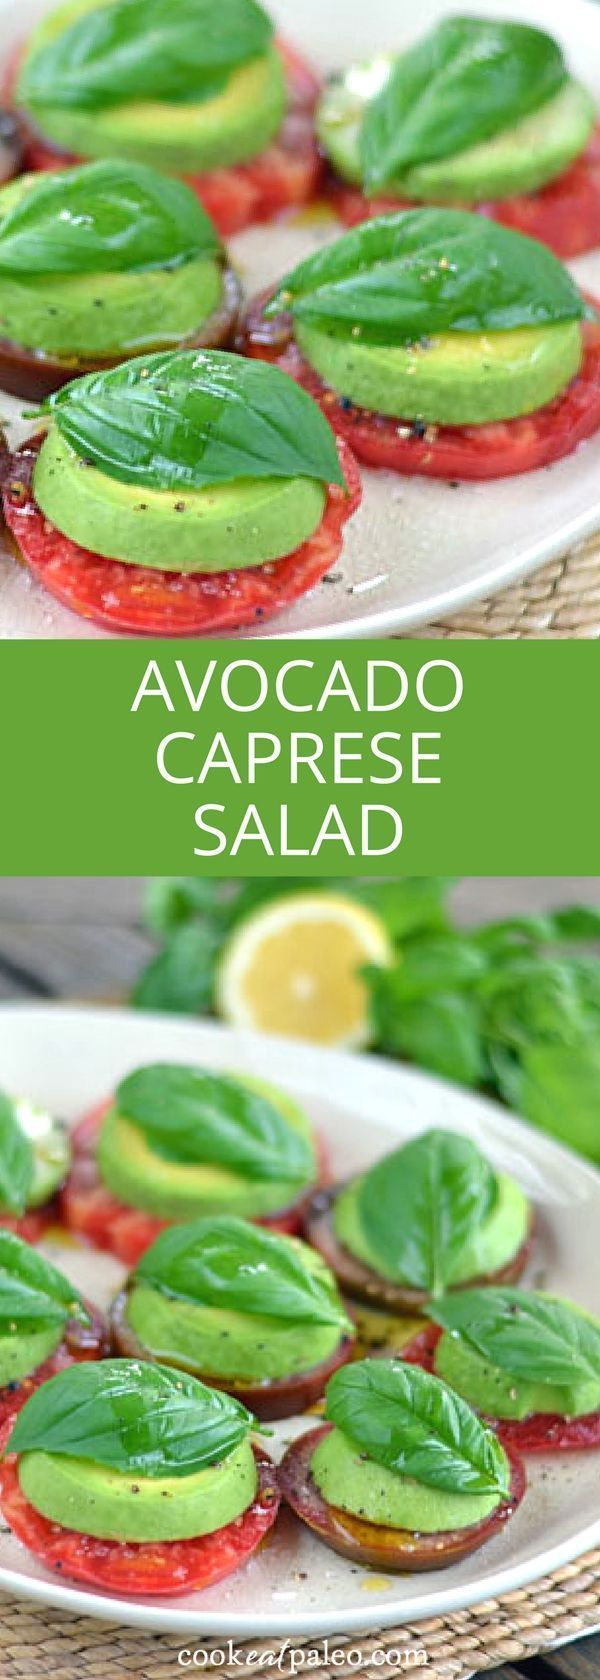 Avocado Caprese salad is a paleo take on a Caprese salad with tomatoes and basil fresh from the garden. Heirloom tomato avocado salad is the perfect appetizer or lunch. {gluten free, dairy free, vegan, paleo} ~ http://cookeatpaleo.com